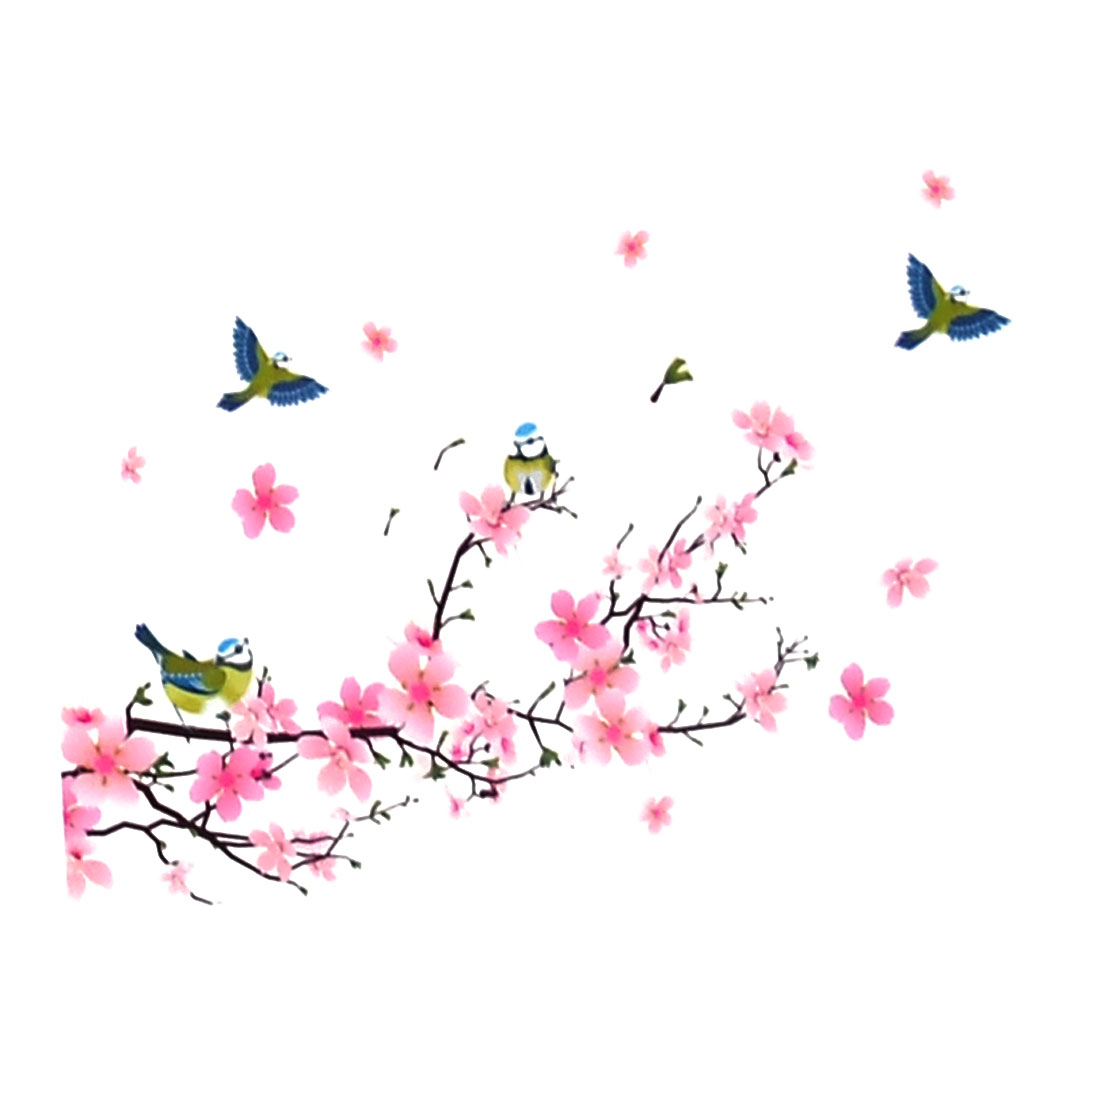 Room Art Decor Cherry Blossom Pattern Removable Wall Decor Sticker Decal 50 x 70cm